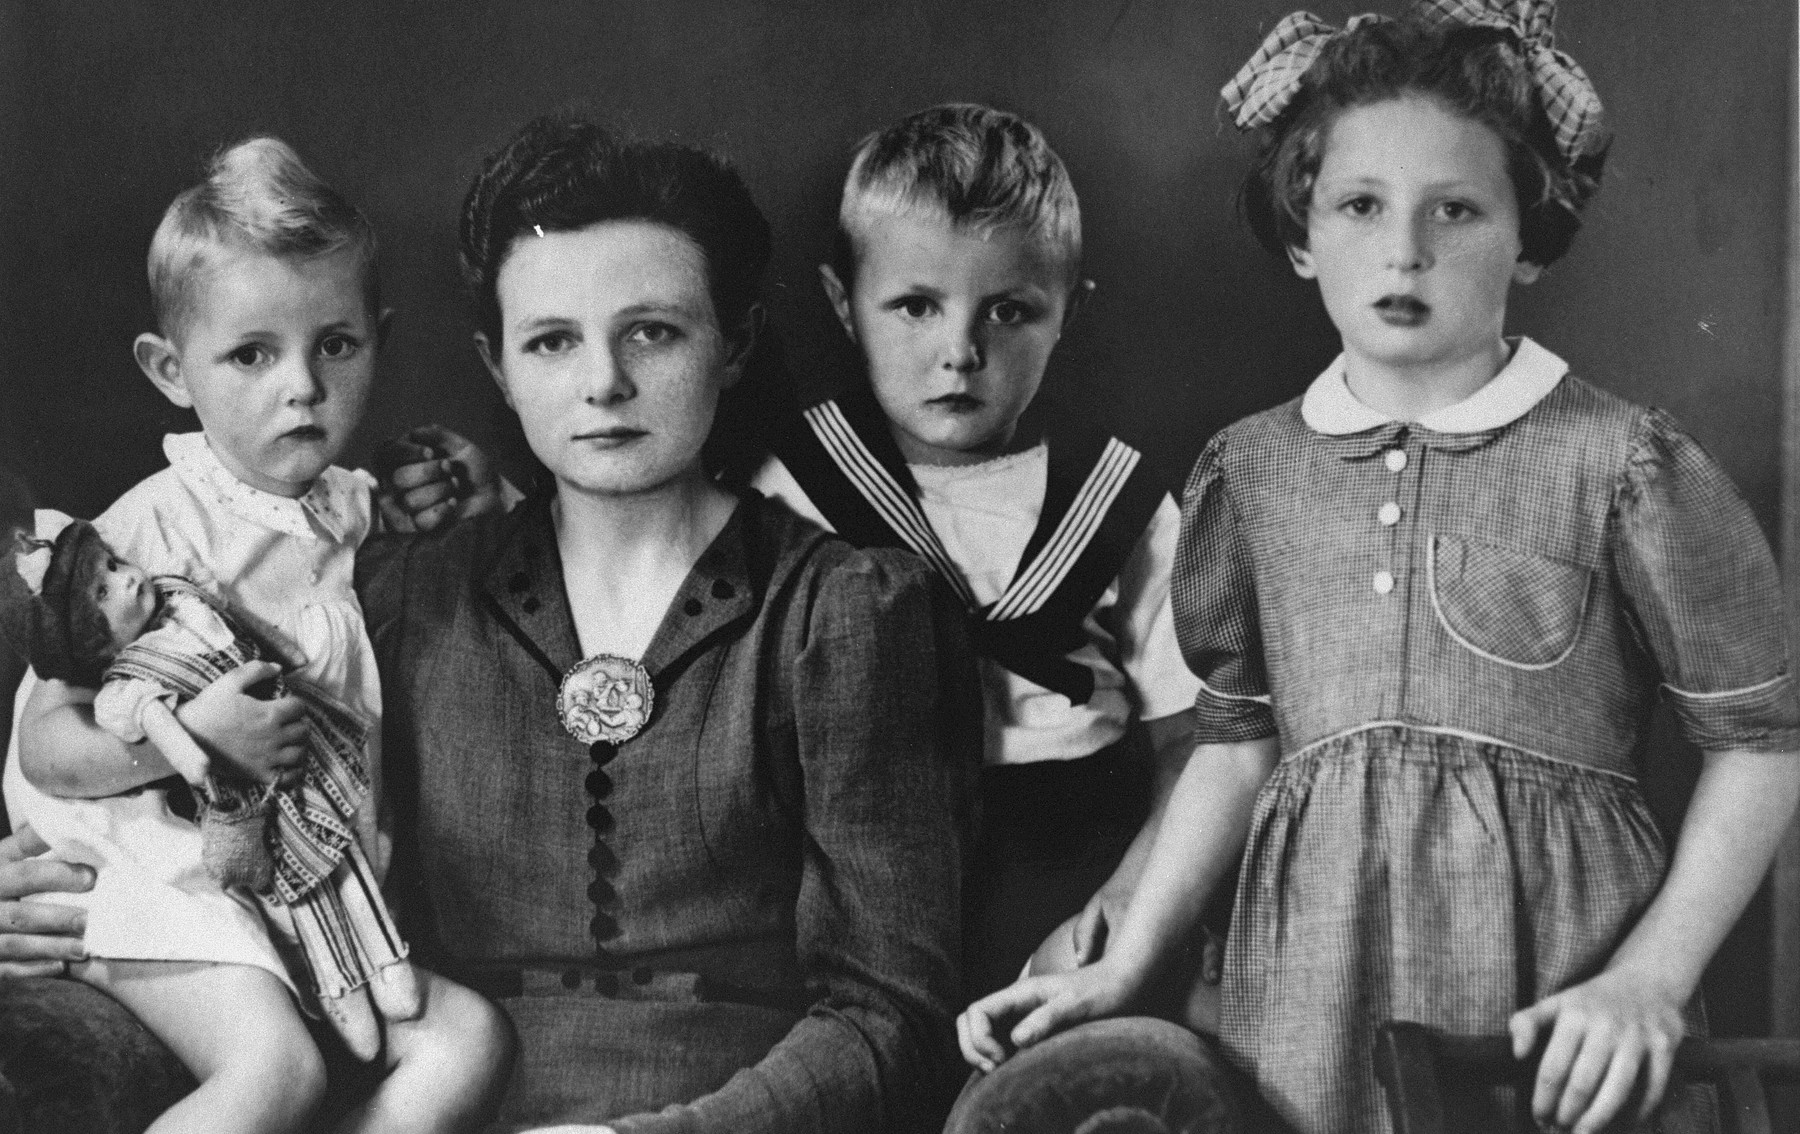 A Jewish child in hiding poses with members of the Dutch family that adopted her.  Pictured is the donor, Henny Kalkstein (right) with Dieuwke Hofstede and her two sons, Maaike and Andries.   Philip and Dieuwke Hofstede were each honored by Yad Vashem as one of the Righteous Among the Nations.